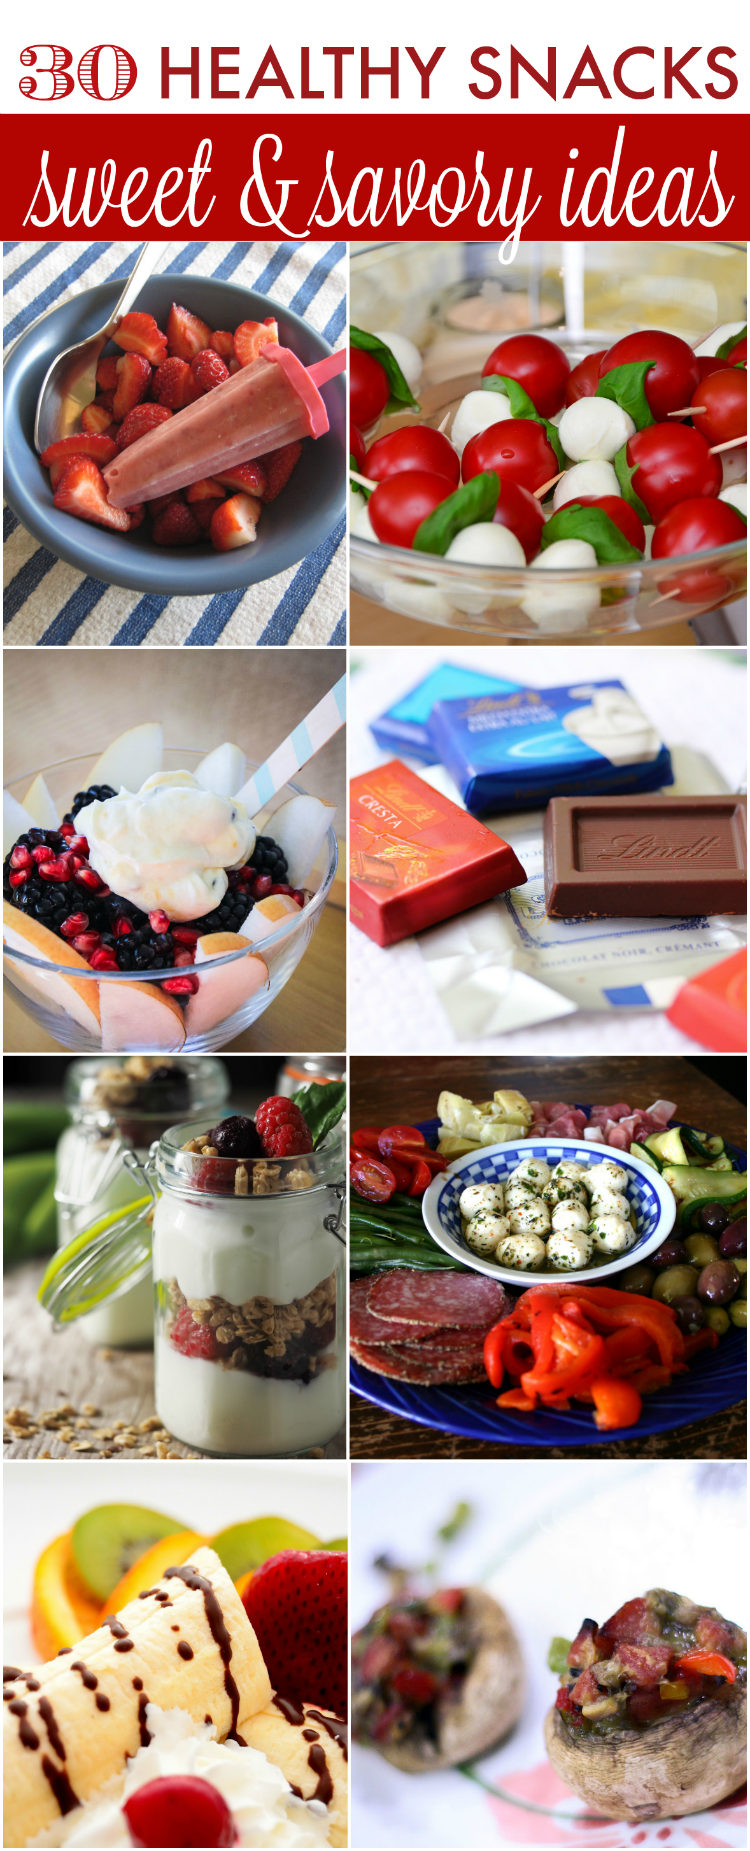 10 diy projects to spruce up your space snacks ideas snacks and food